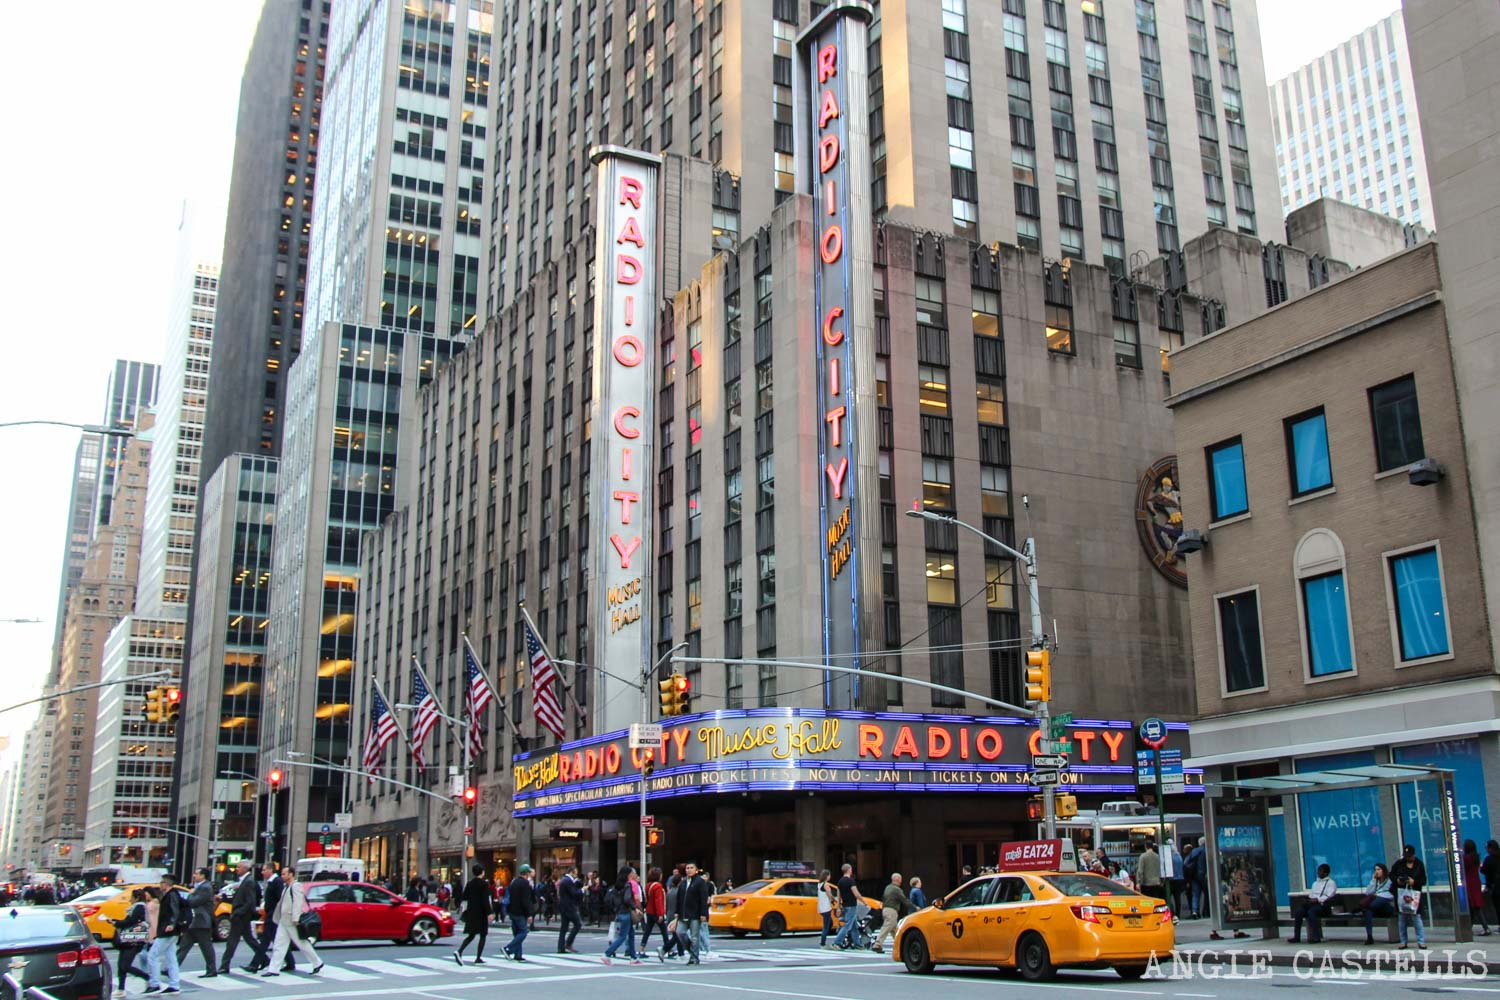 Como-orientarte-Nueva-York-Radio-City-Music-Hall